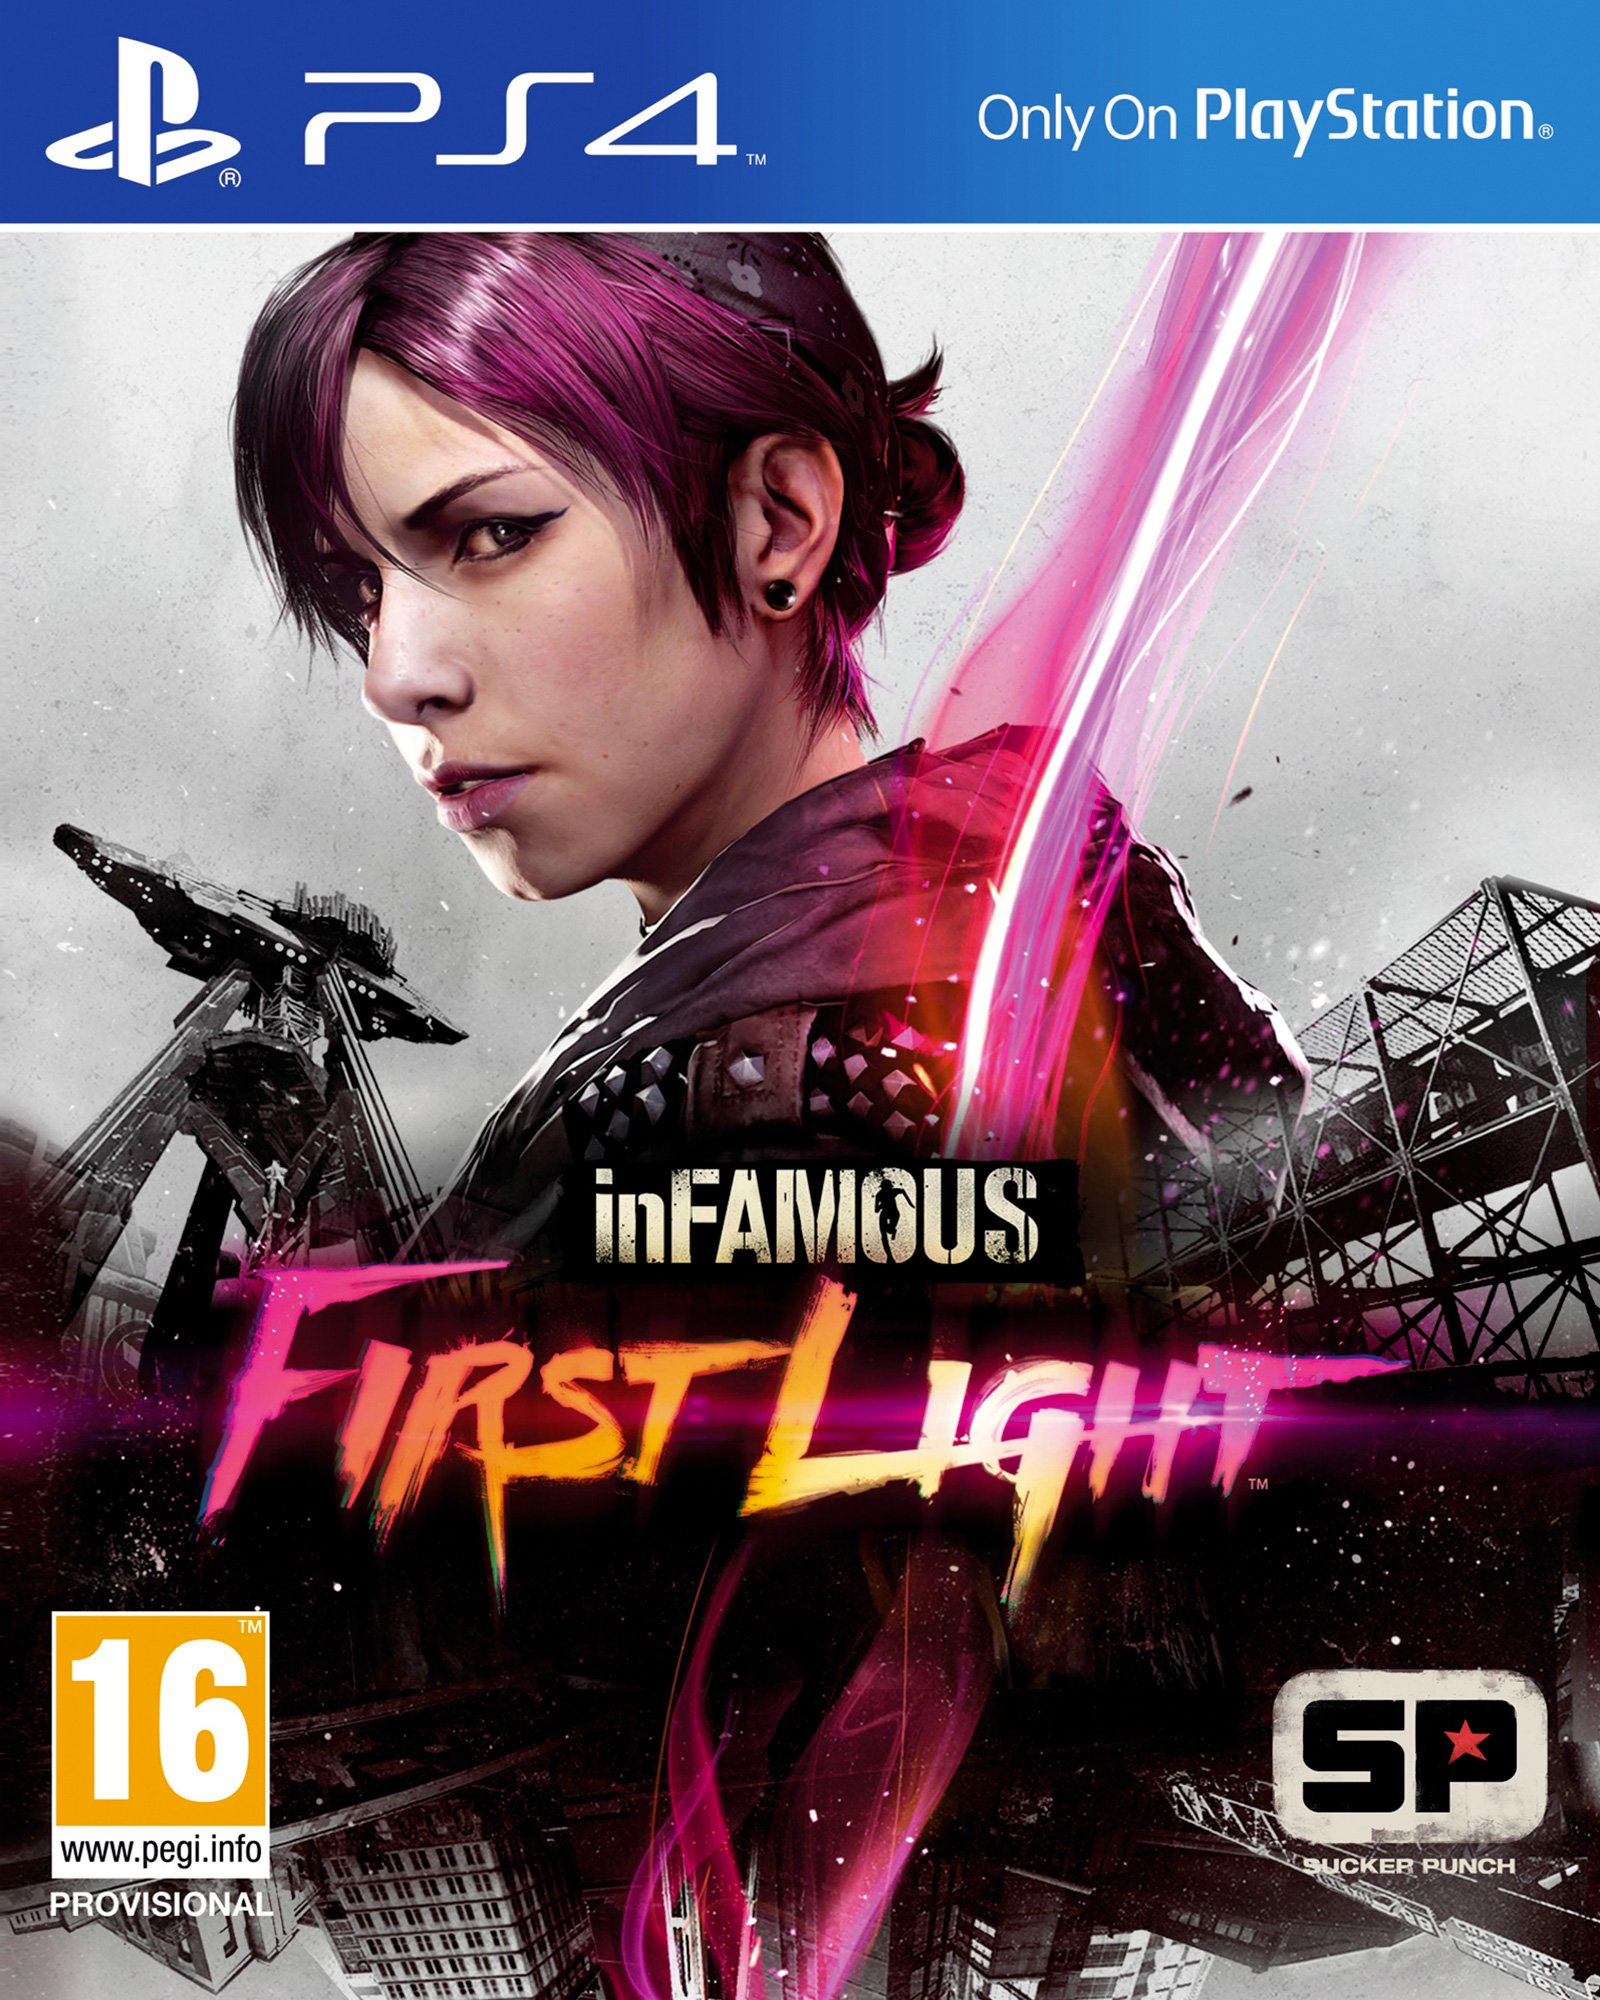 InFamous: First Light [PS4 Exclusive] 5.05 / 6.72 / 7.02 [EUR] (2014) [Русский] (v1.04)